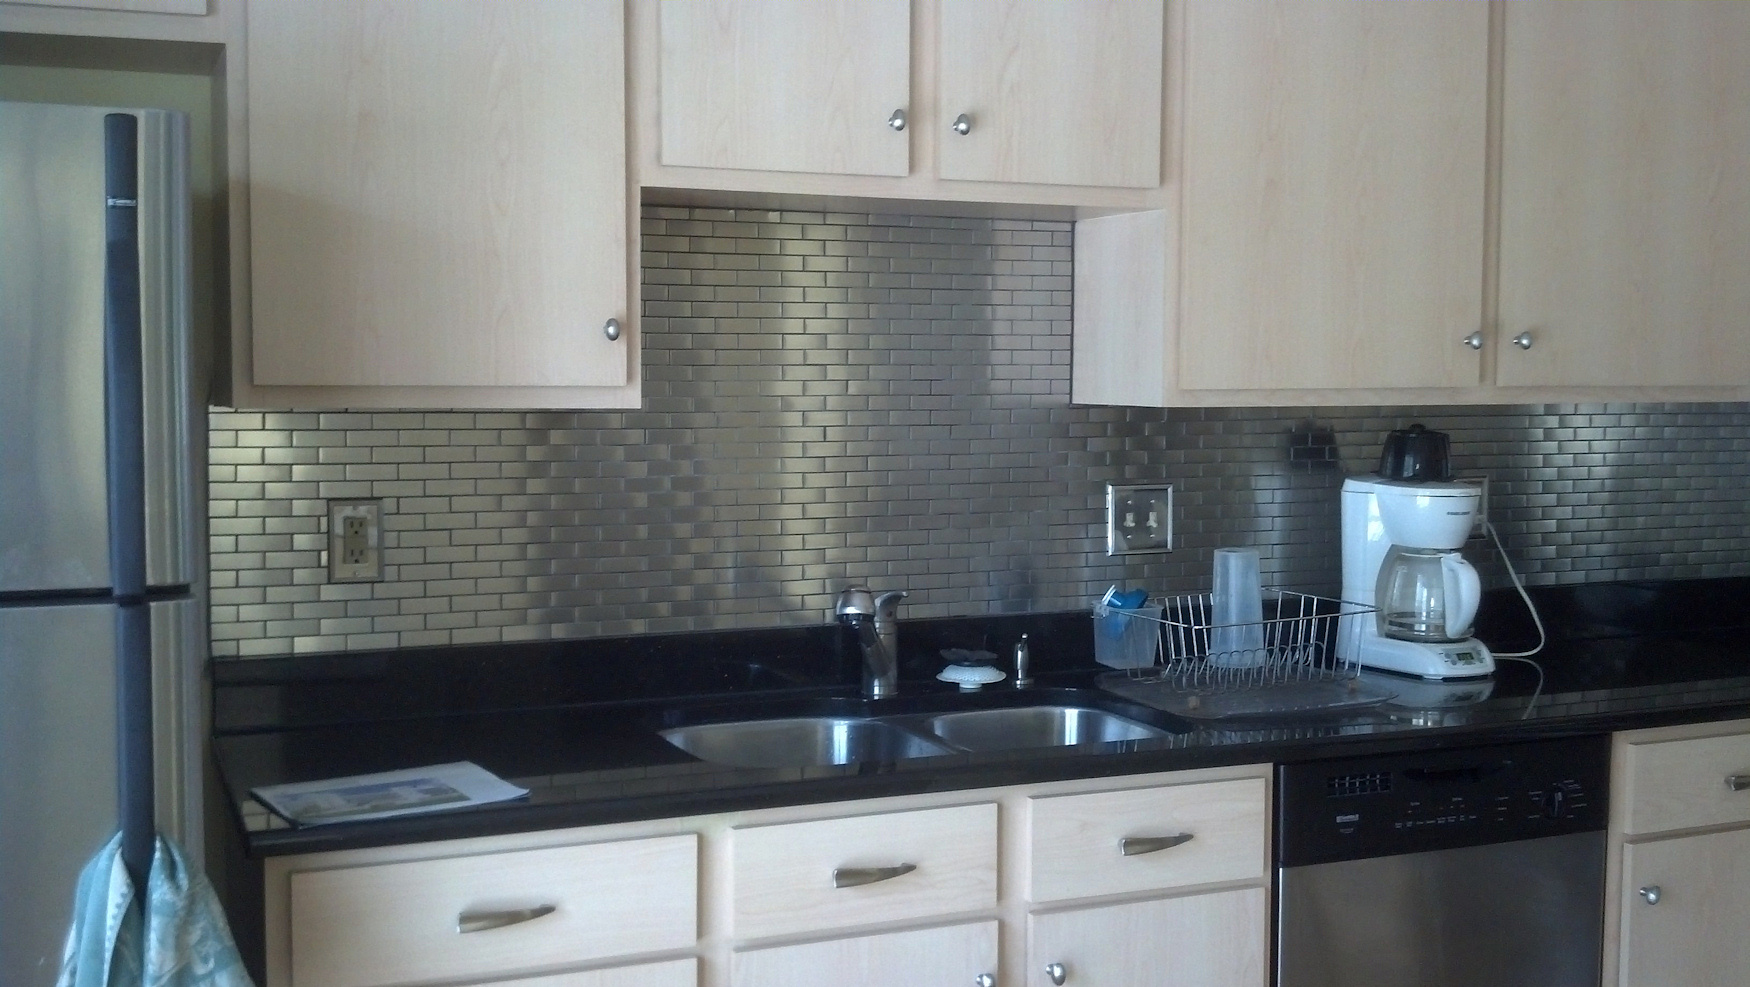 Modern ikea stainless steel backsplash homesfeed - Black and white tile kitchen backsplash ...